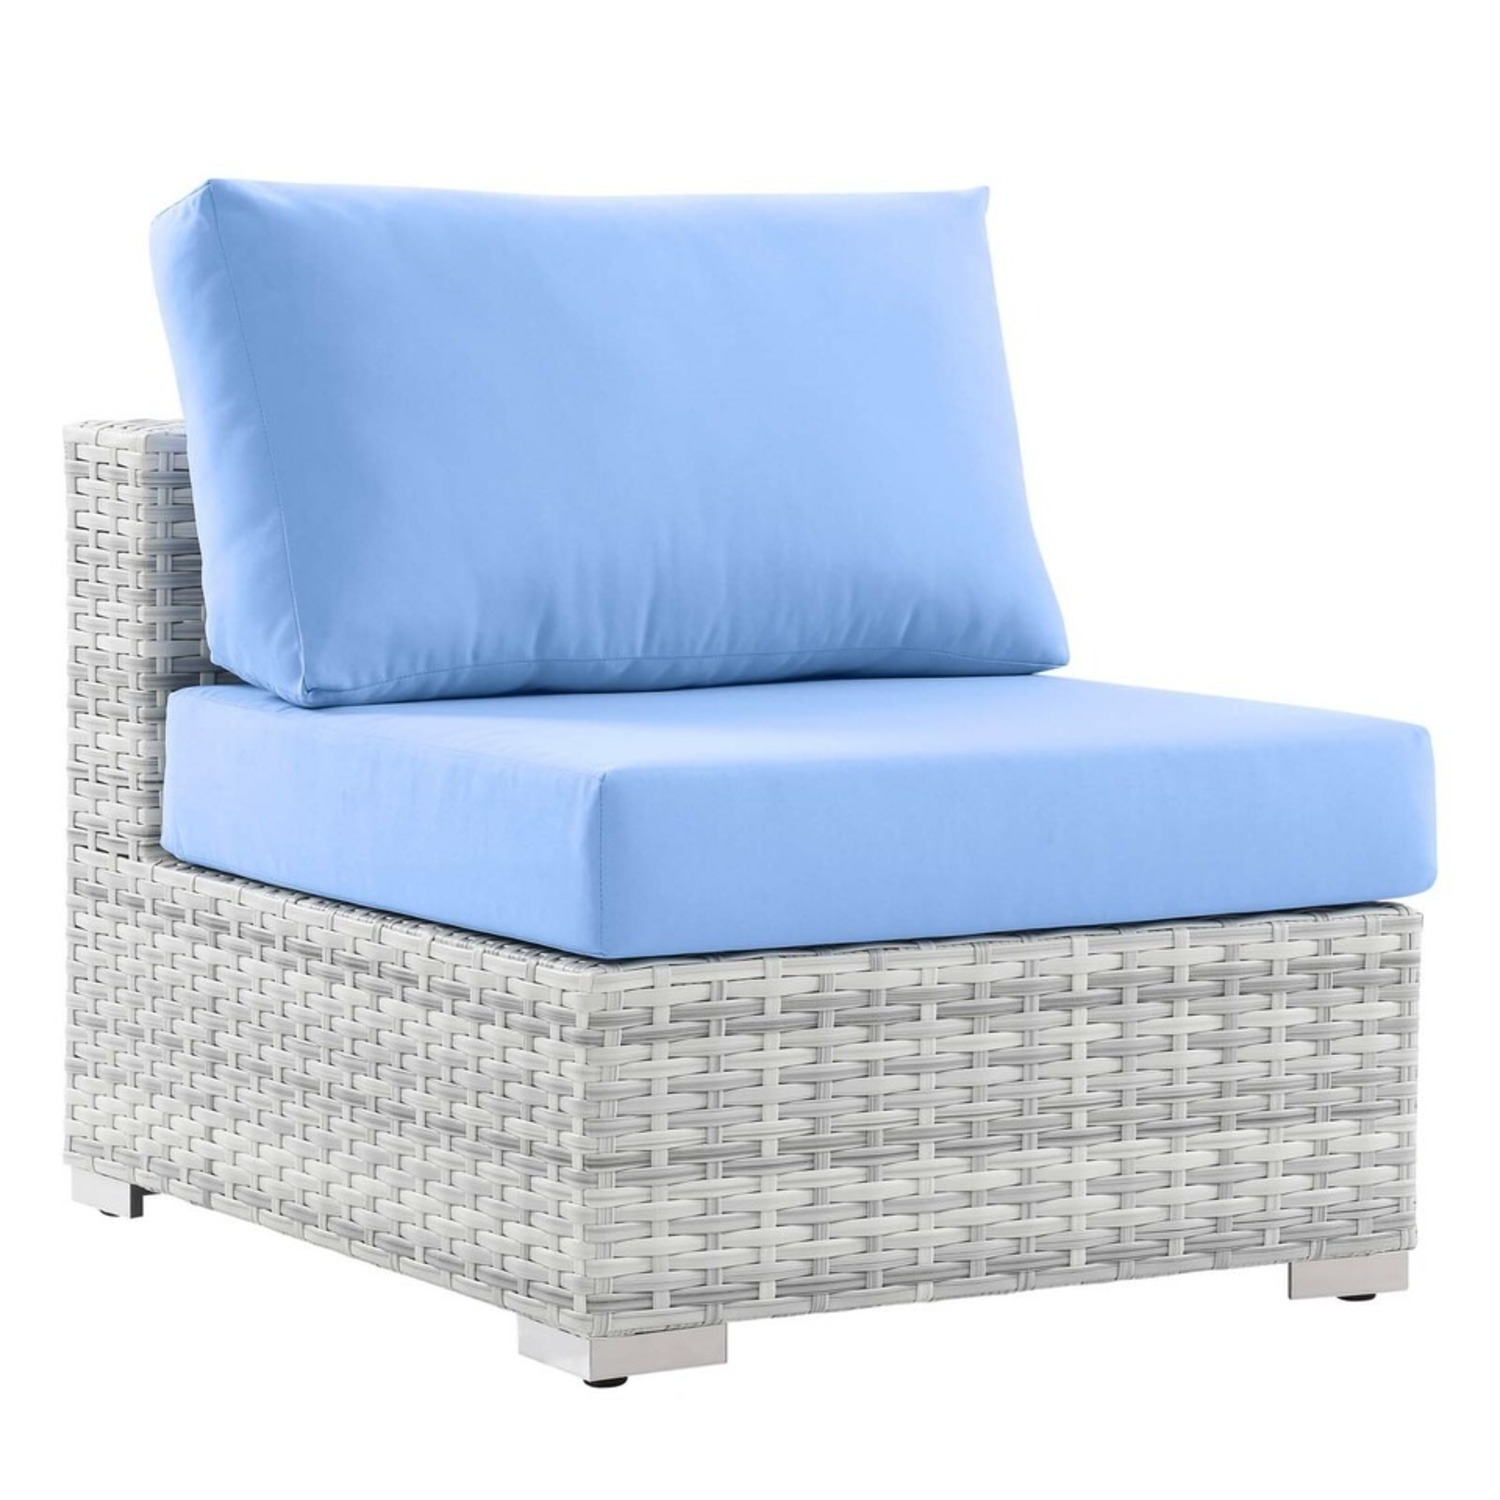 6-Piece Outdoor Patio Sectional In Light Blue Seat - image-2